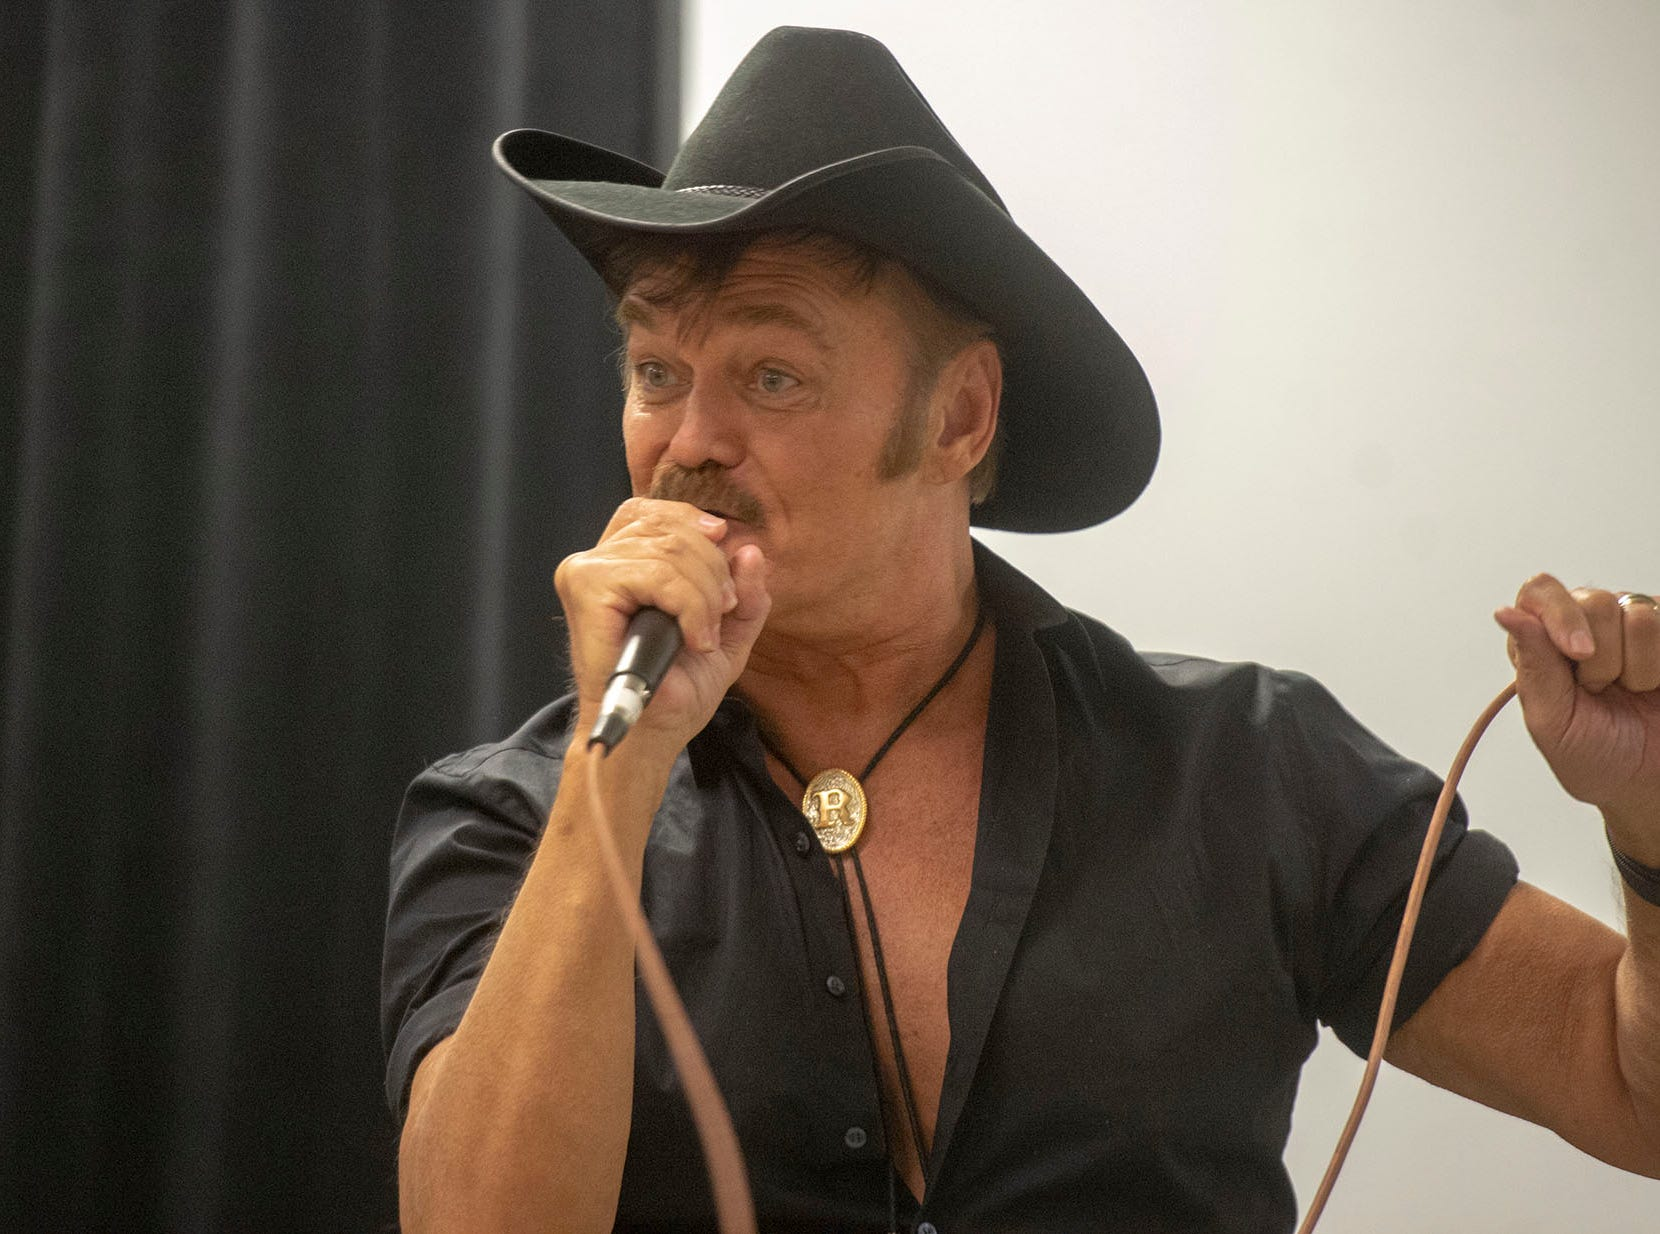 Randy Jones, the original Cowboy of the Village People performs for vendors and guests Saturday night at the White Rose Comic Con, which runs through Sunday, March 24, 2019 at Utz Arena of the York Fairgrounds.